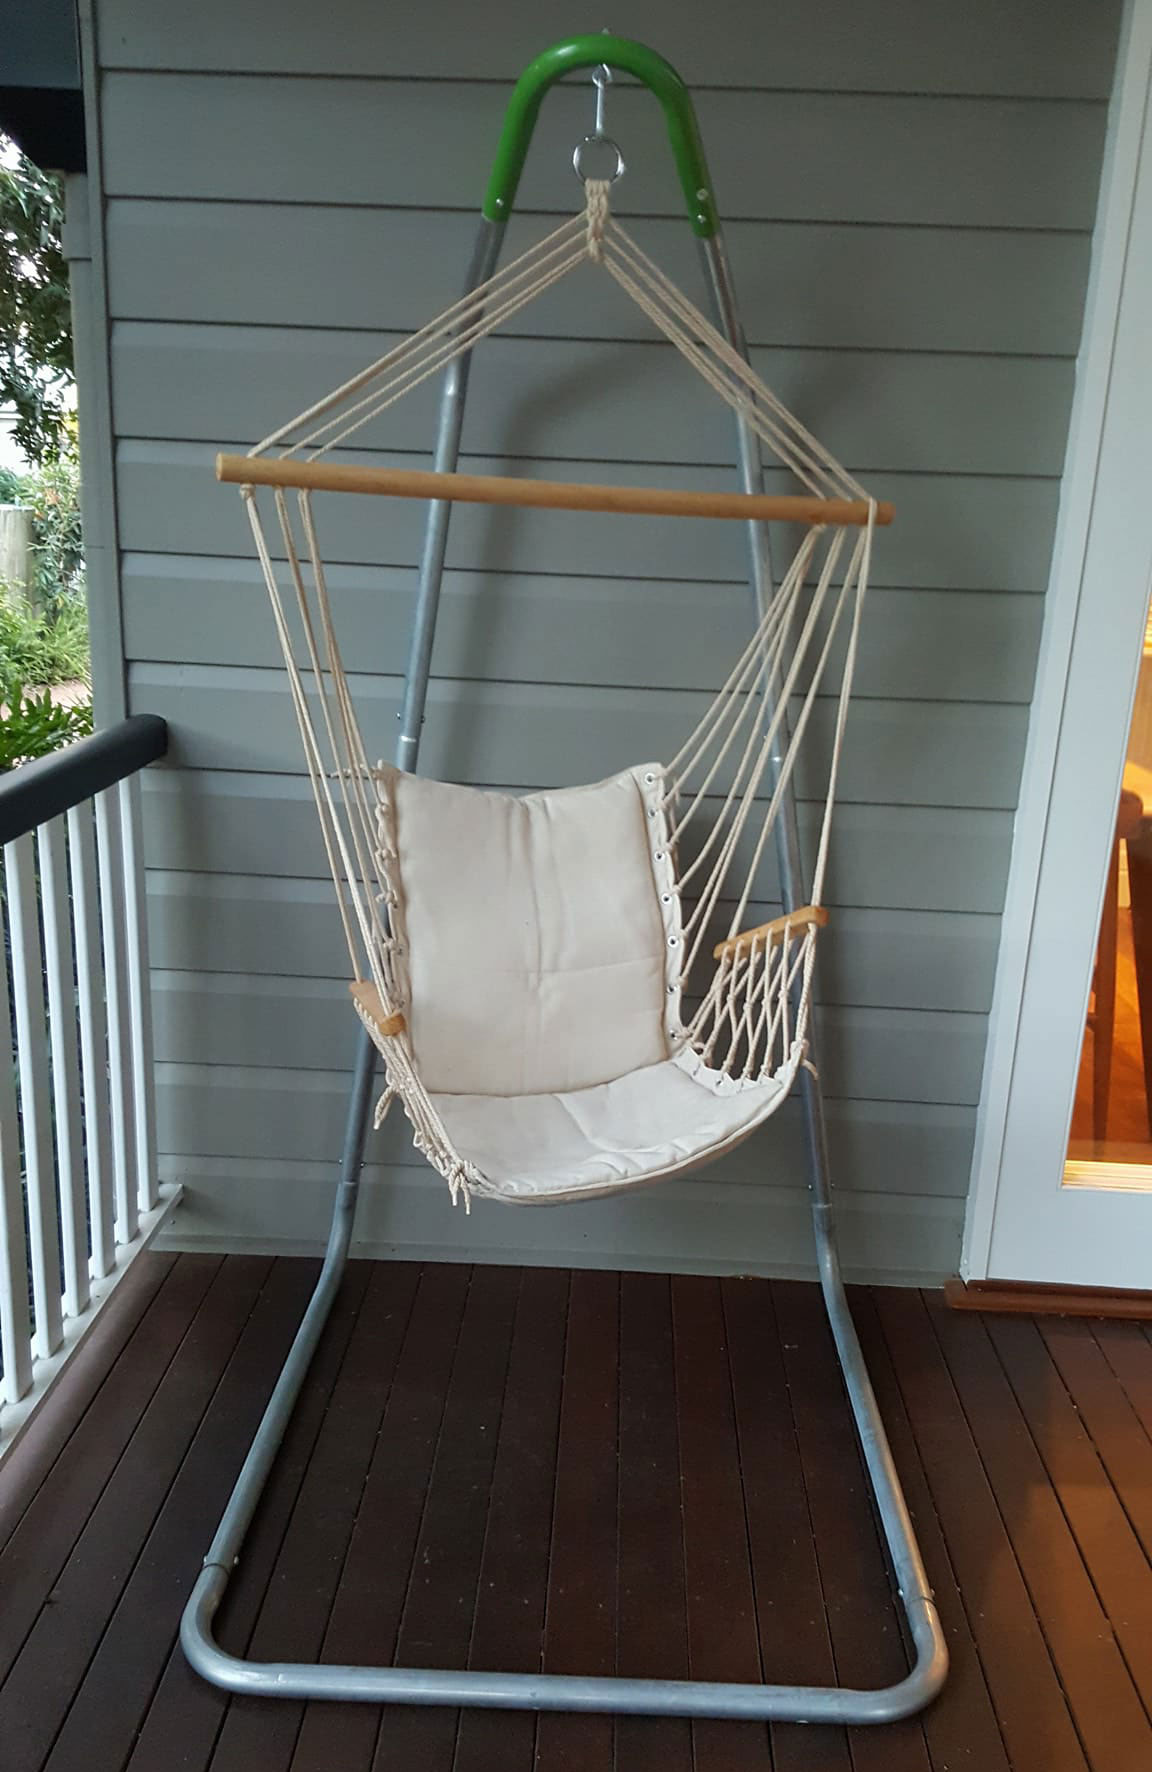 Picture of: Beige Padded Hammock Chair With Wooden Arm Rests With U Stand Heavenly Hammocks